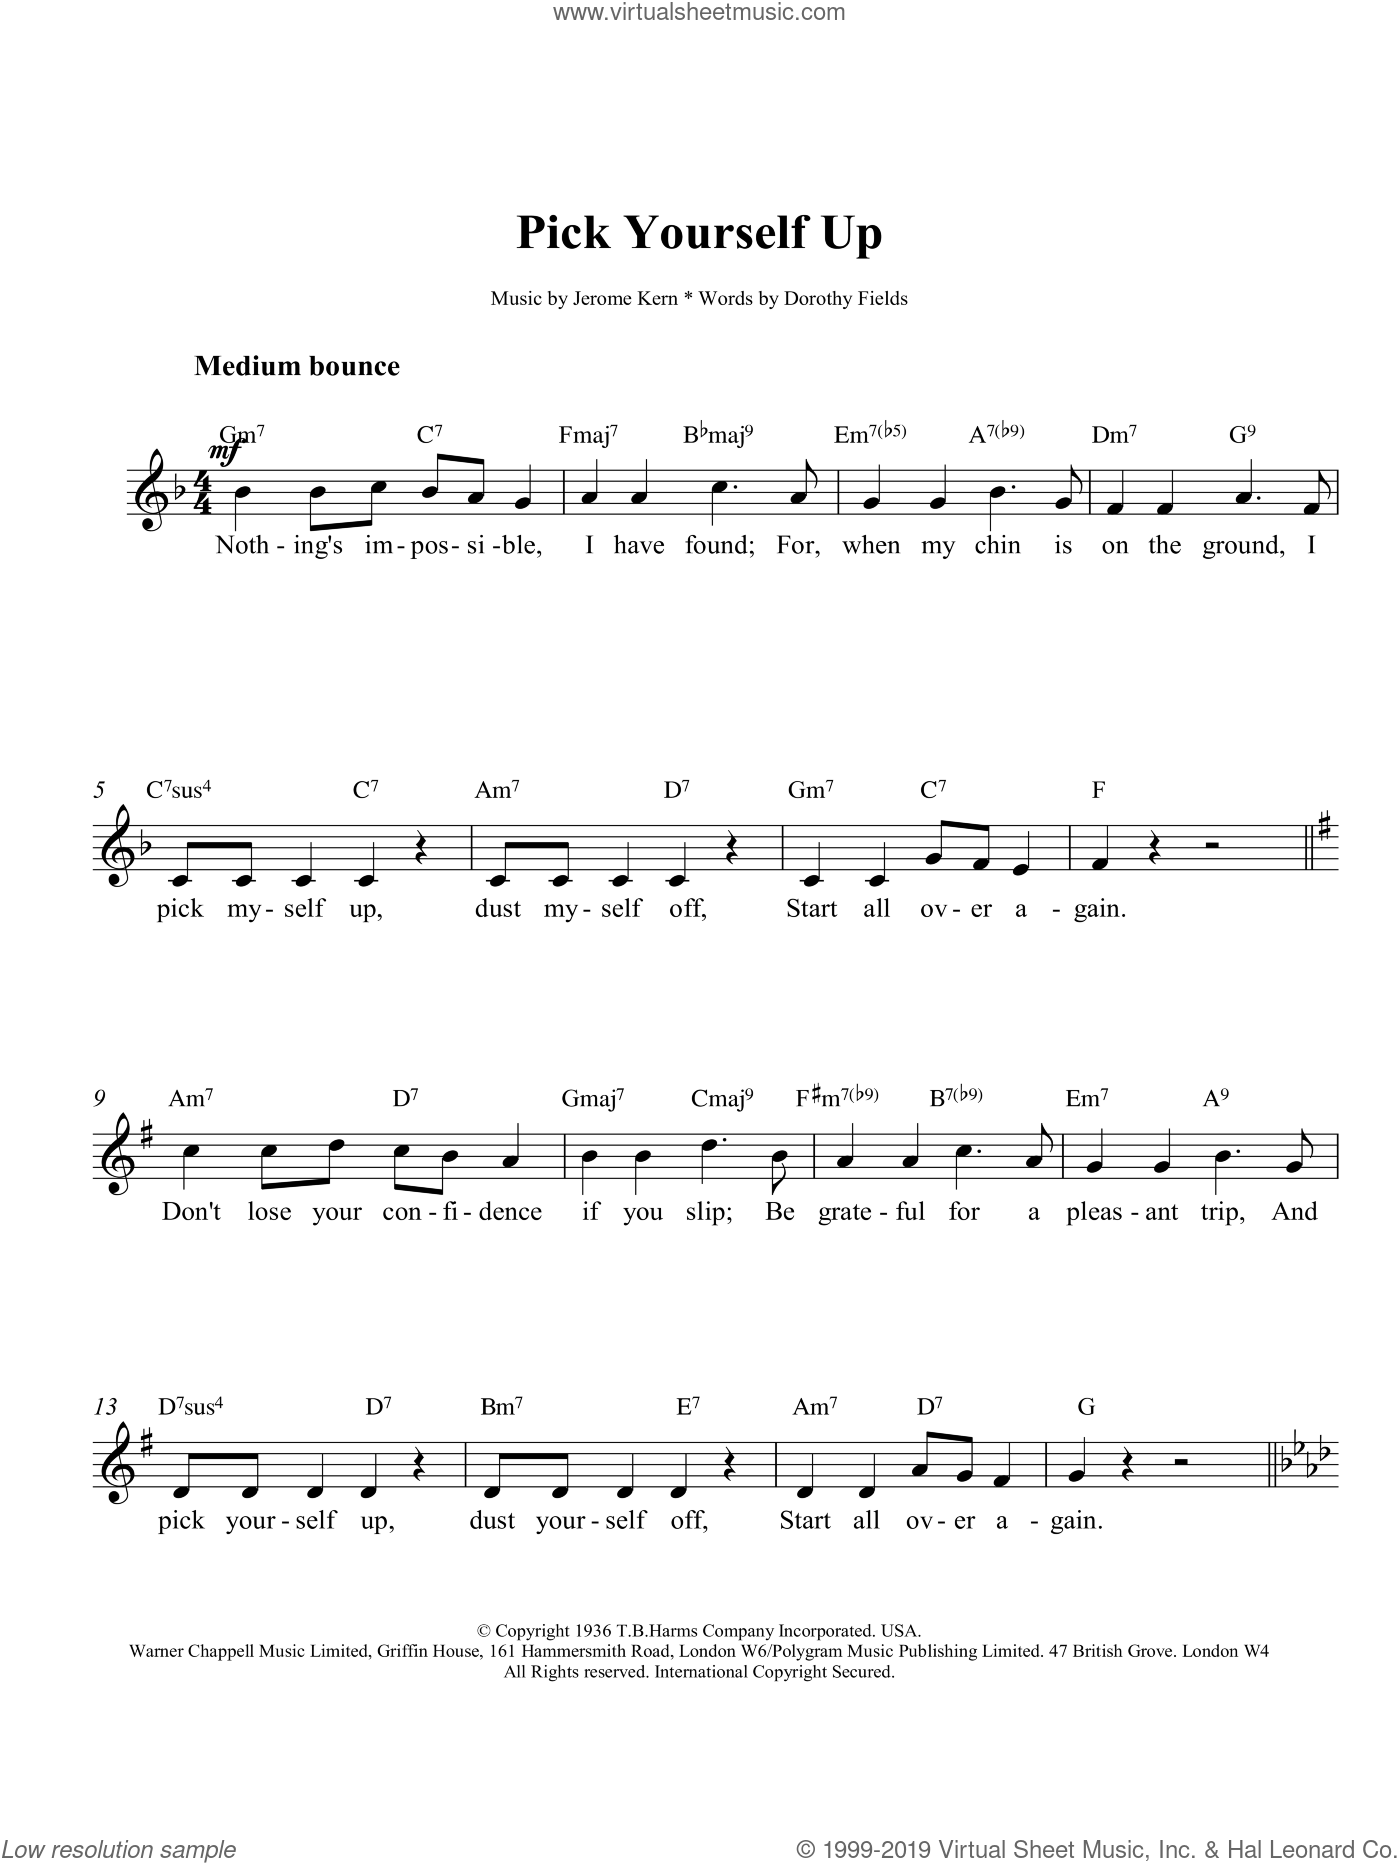 Pick Yourself Up sheet music for voice and other instruments (fake book) by Dorothy Fields